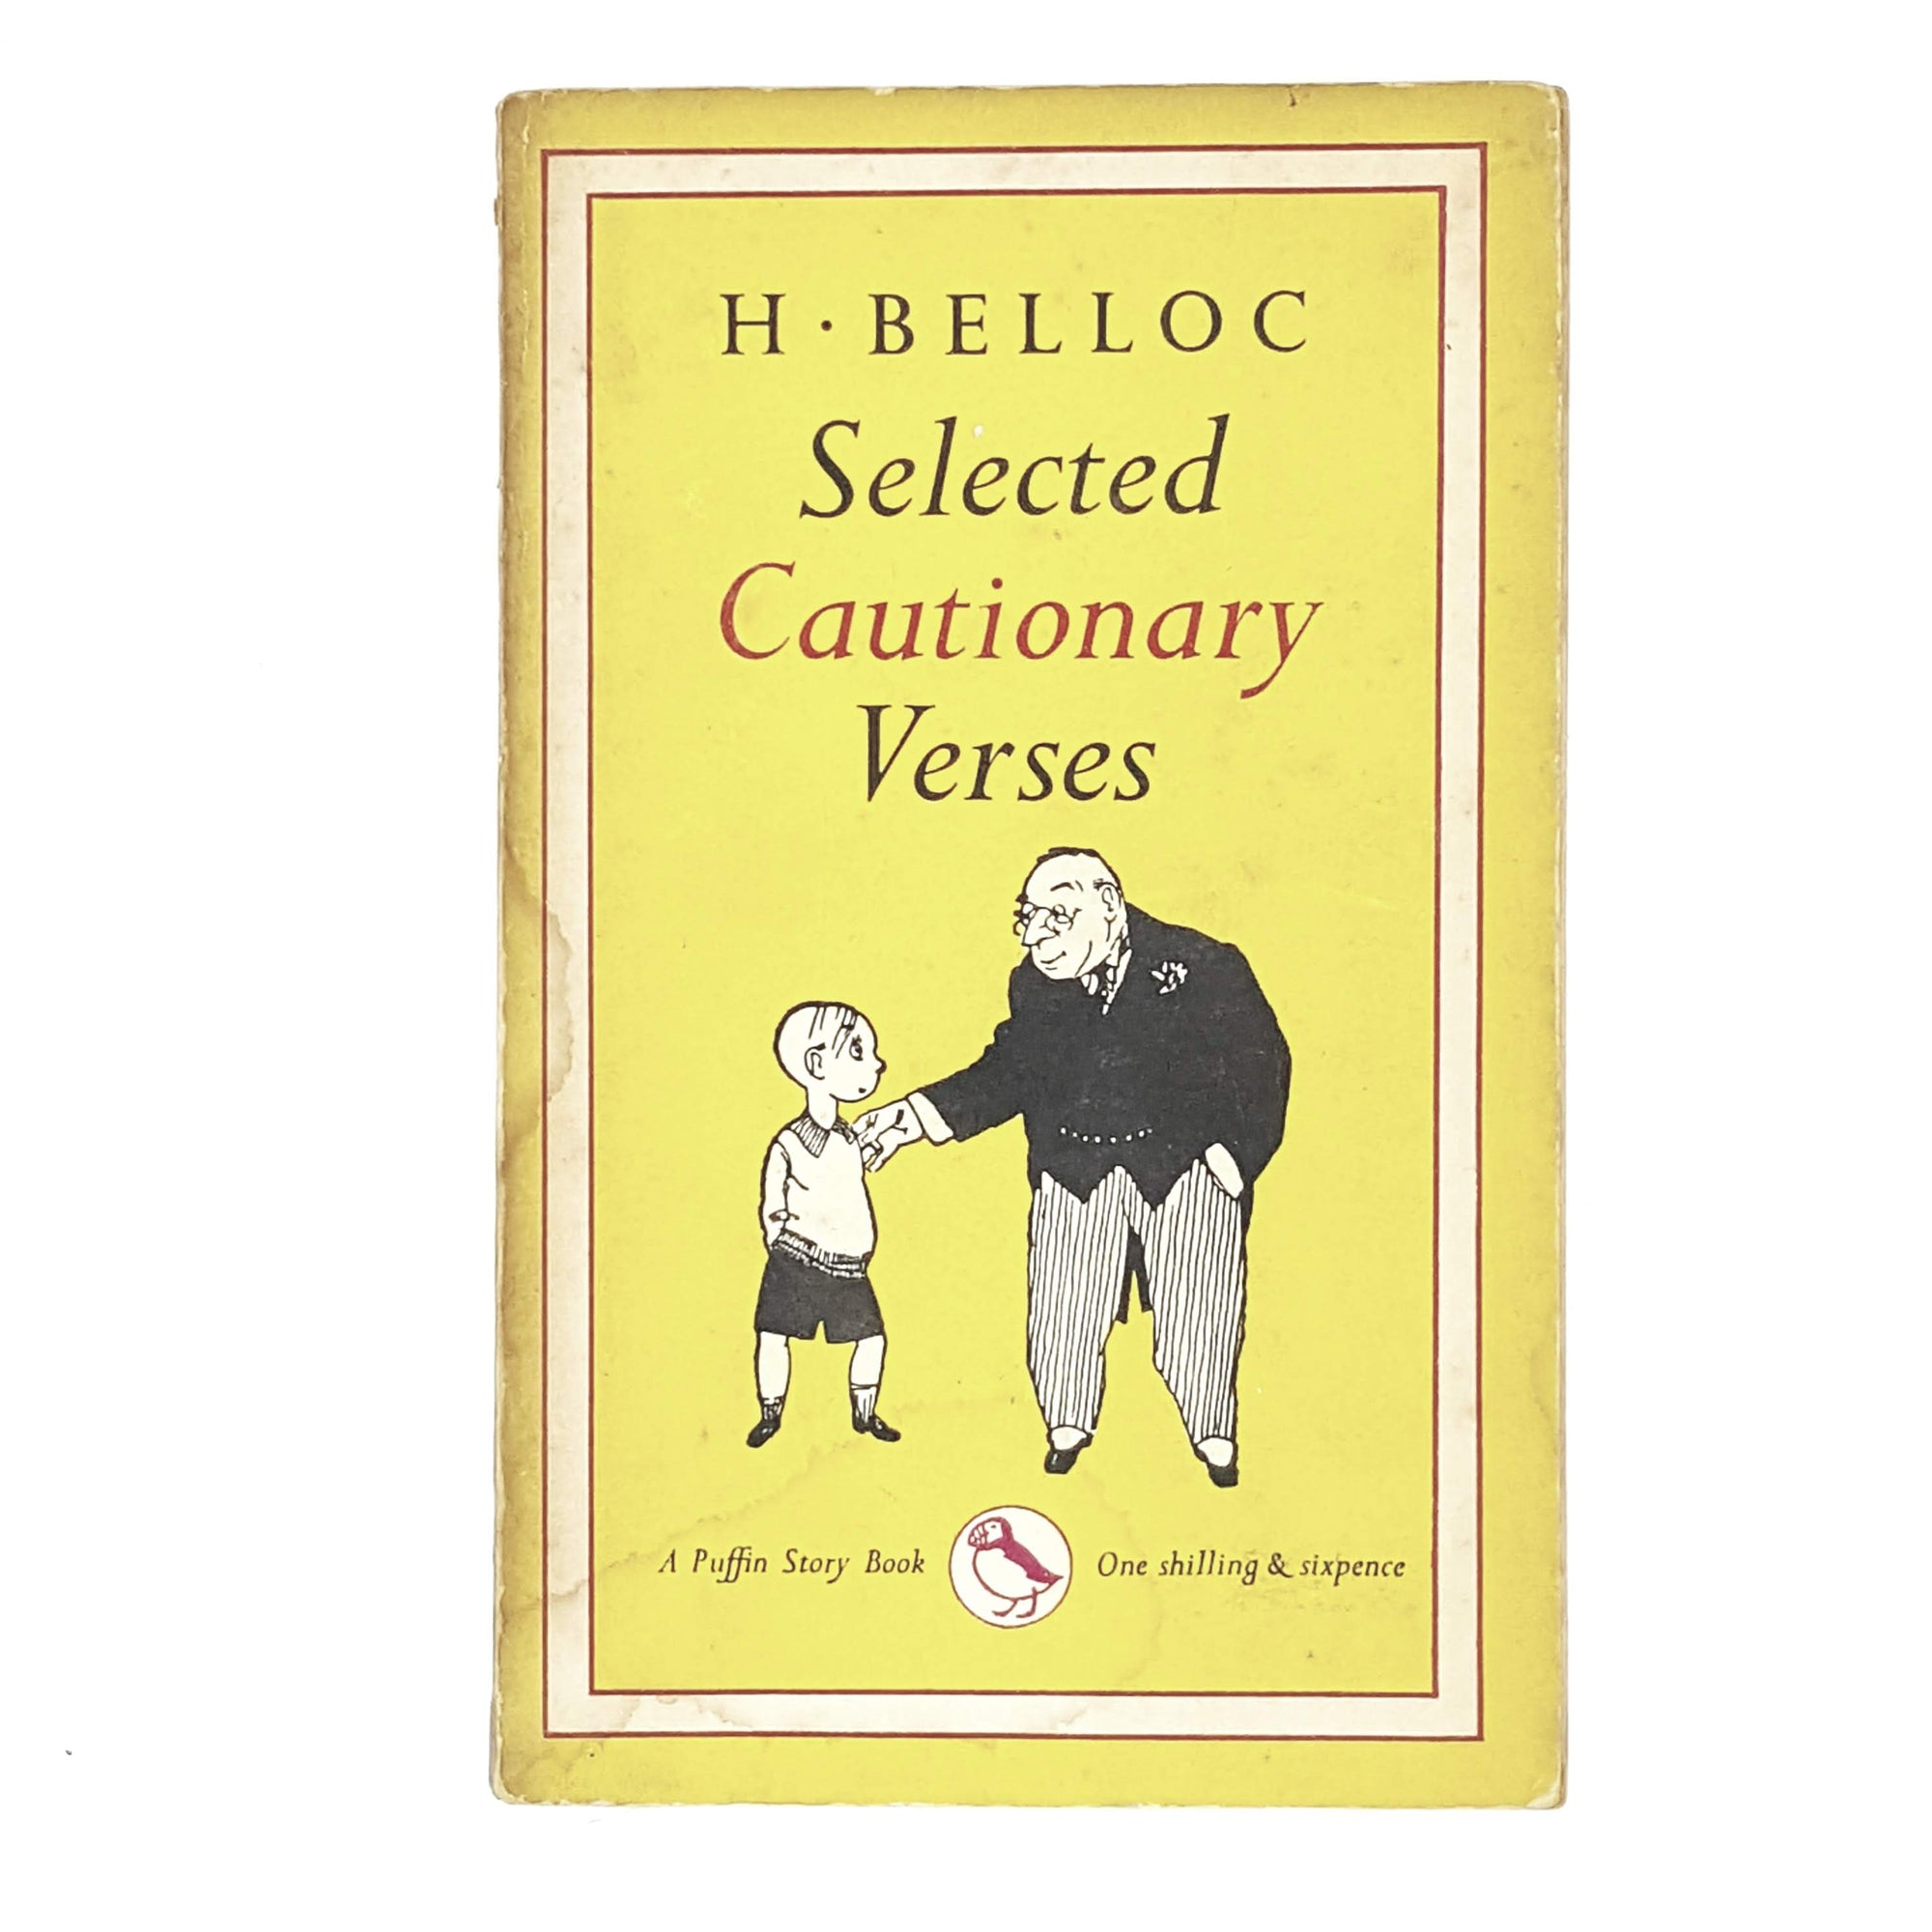 Vintage Puffin Selected Cautionary Verses by H. Belloc 1953